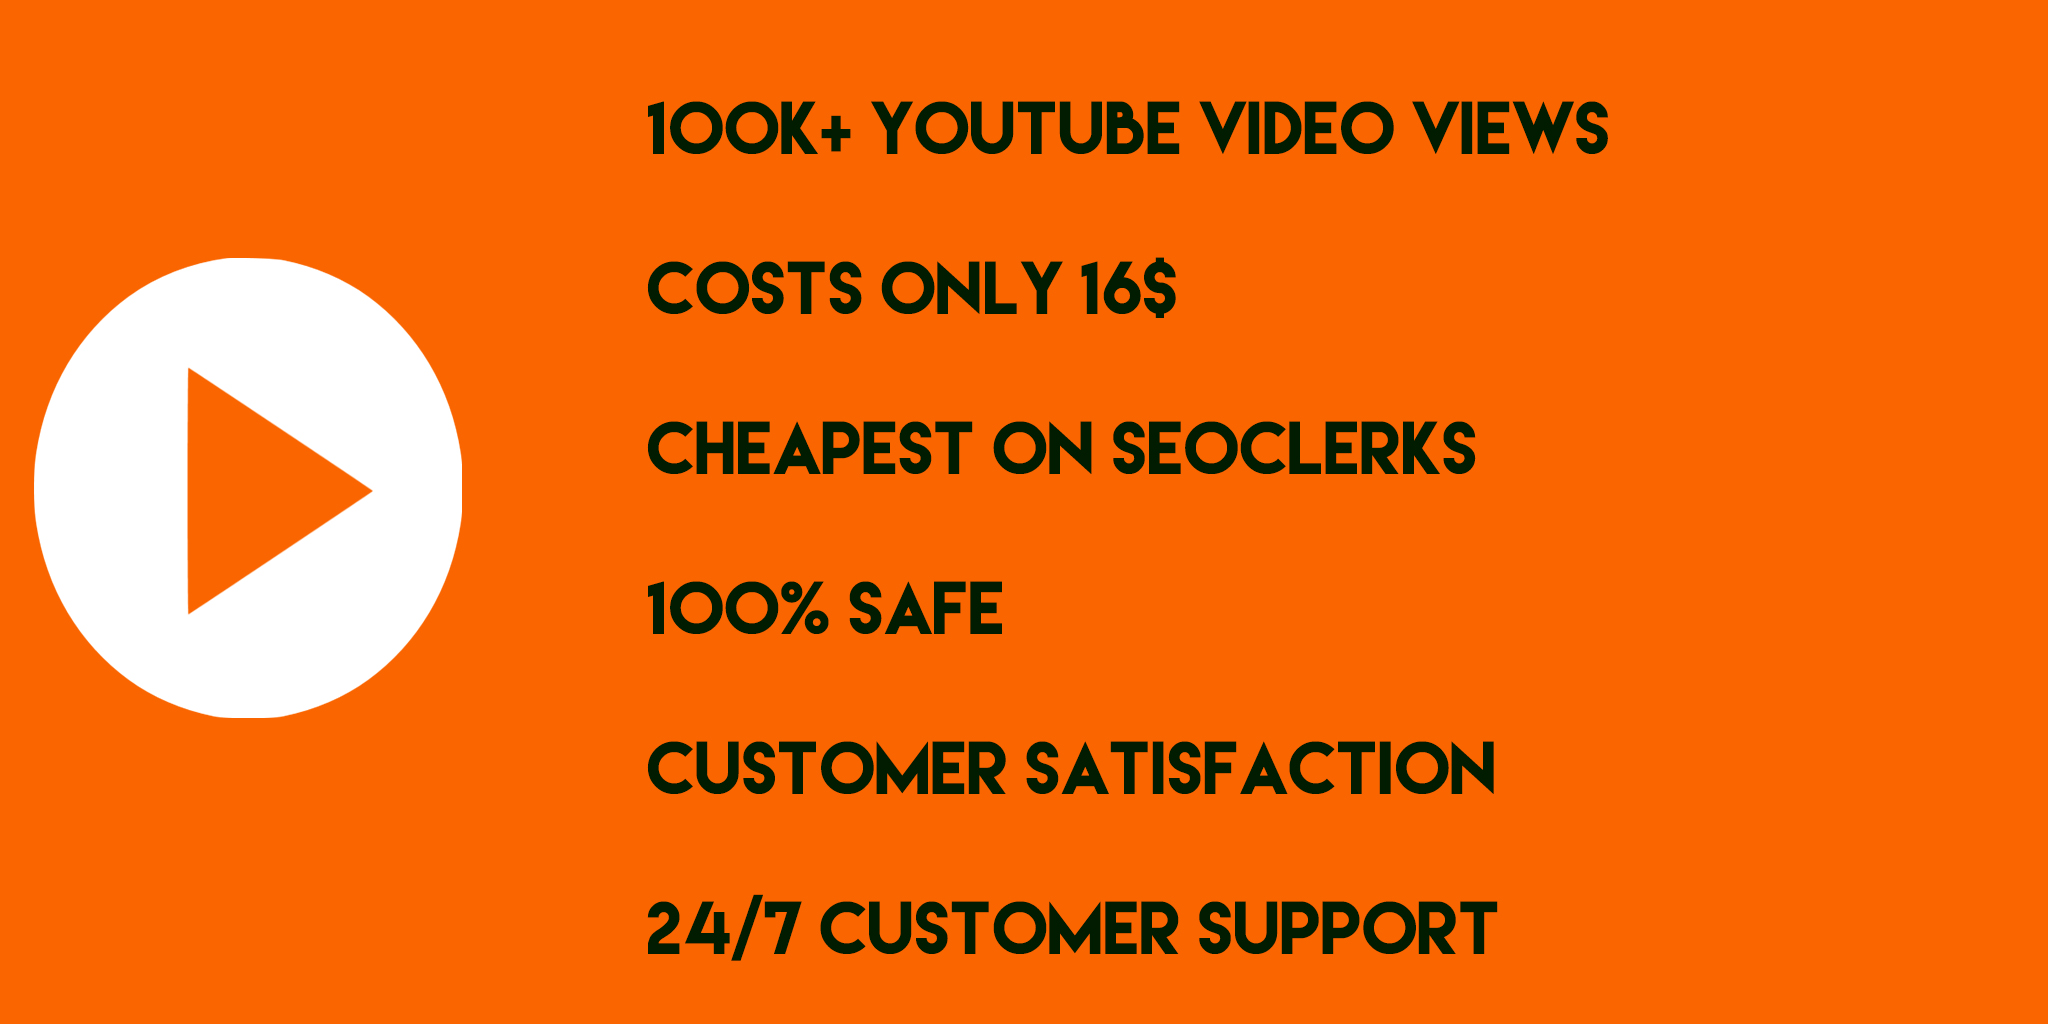 Get 100K+ Youtube video viewers